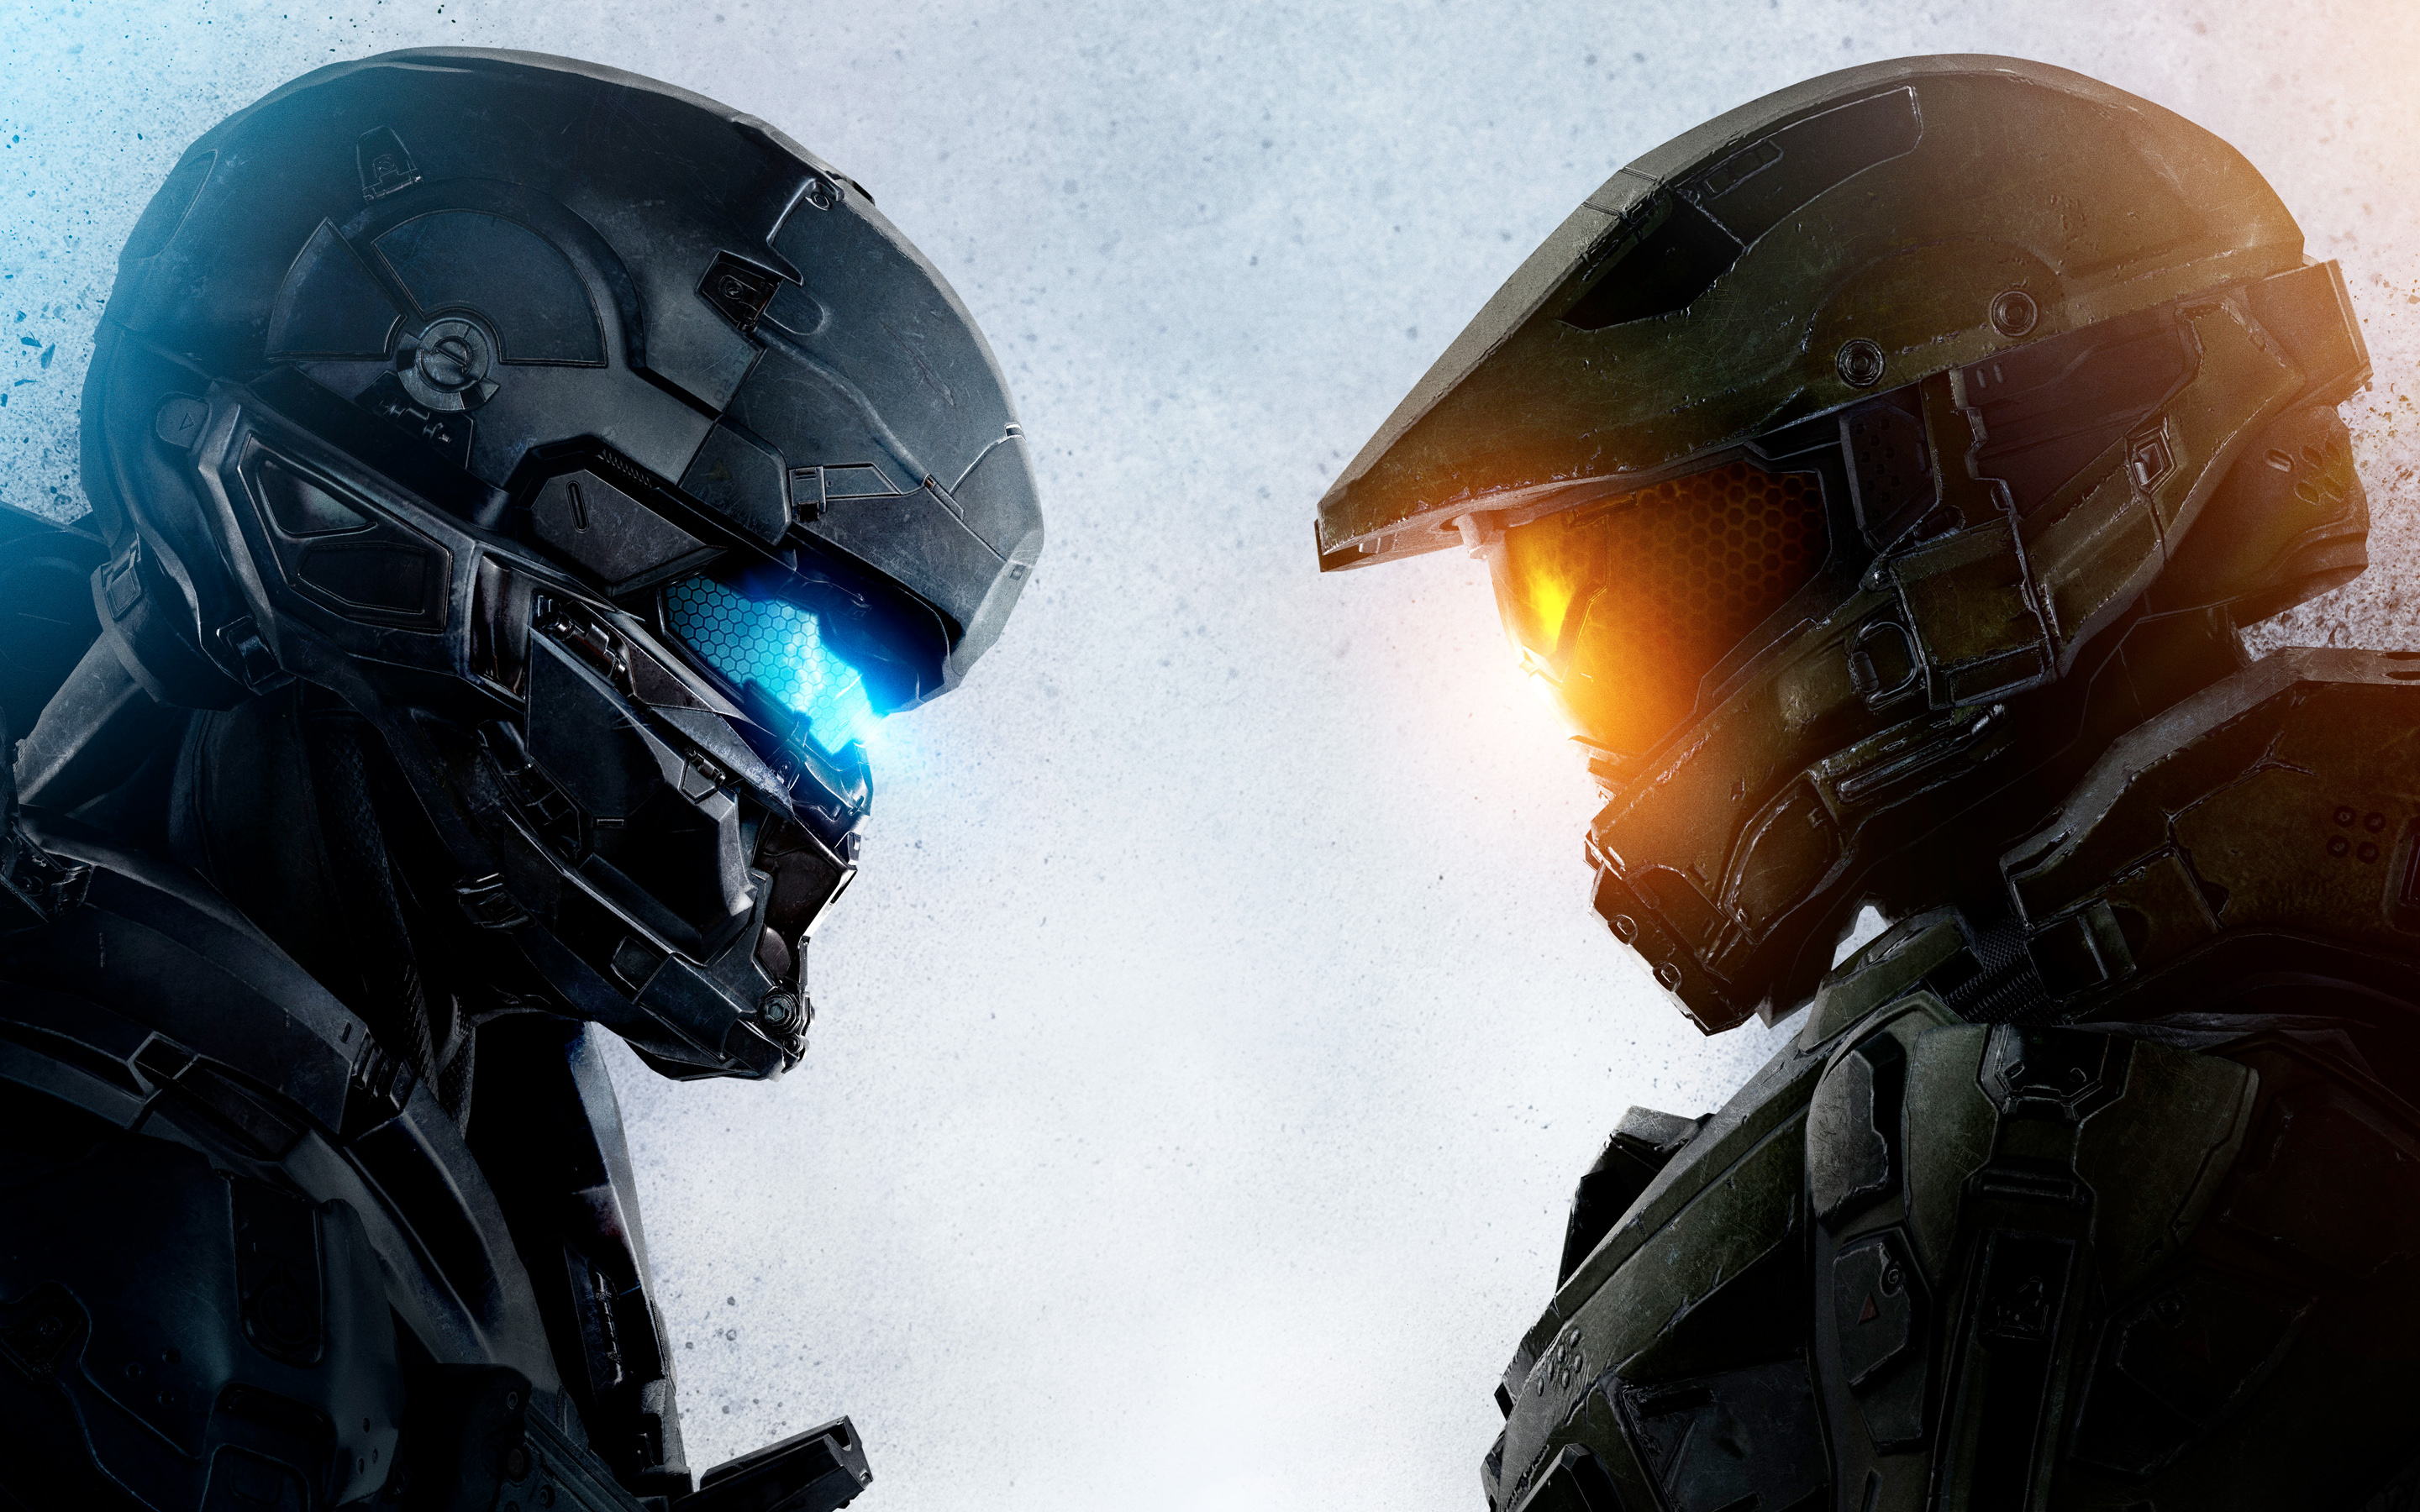 2015 Halo 5 Guardians Wallpapers HD Wallpapers 2880x1800